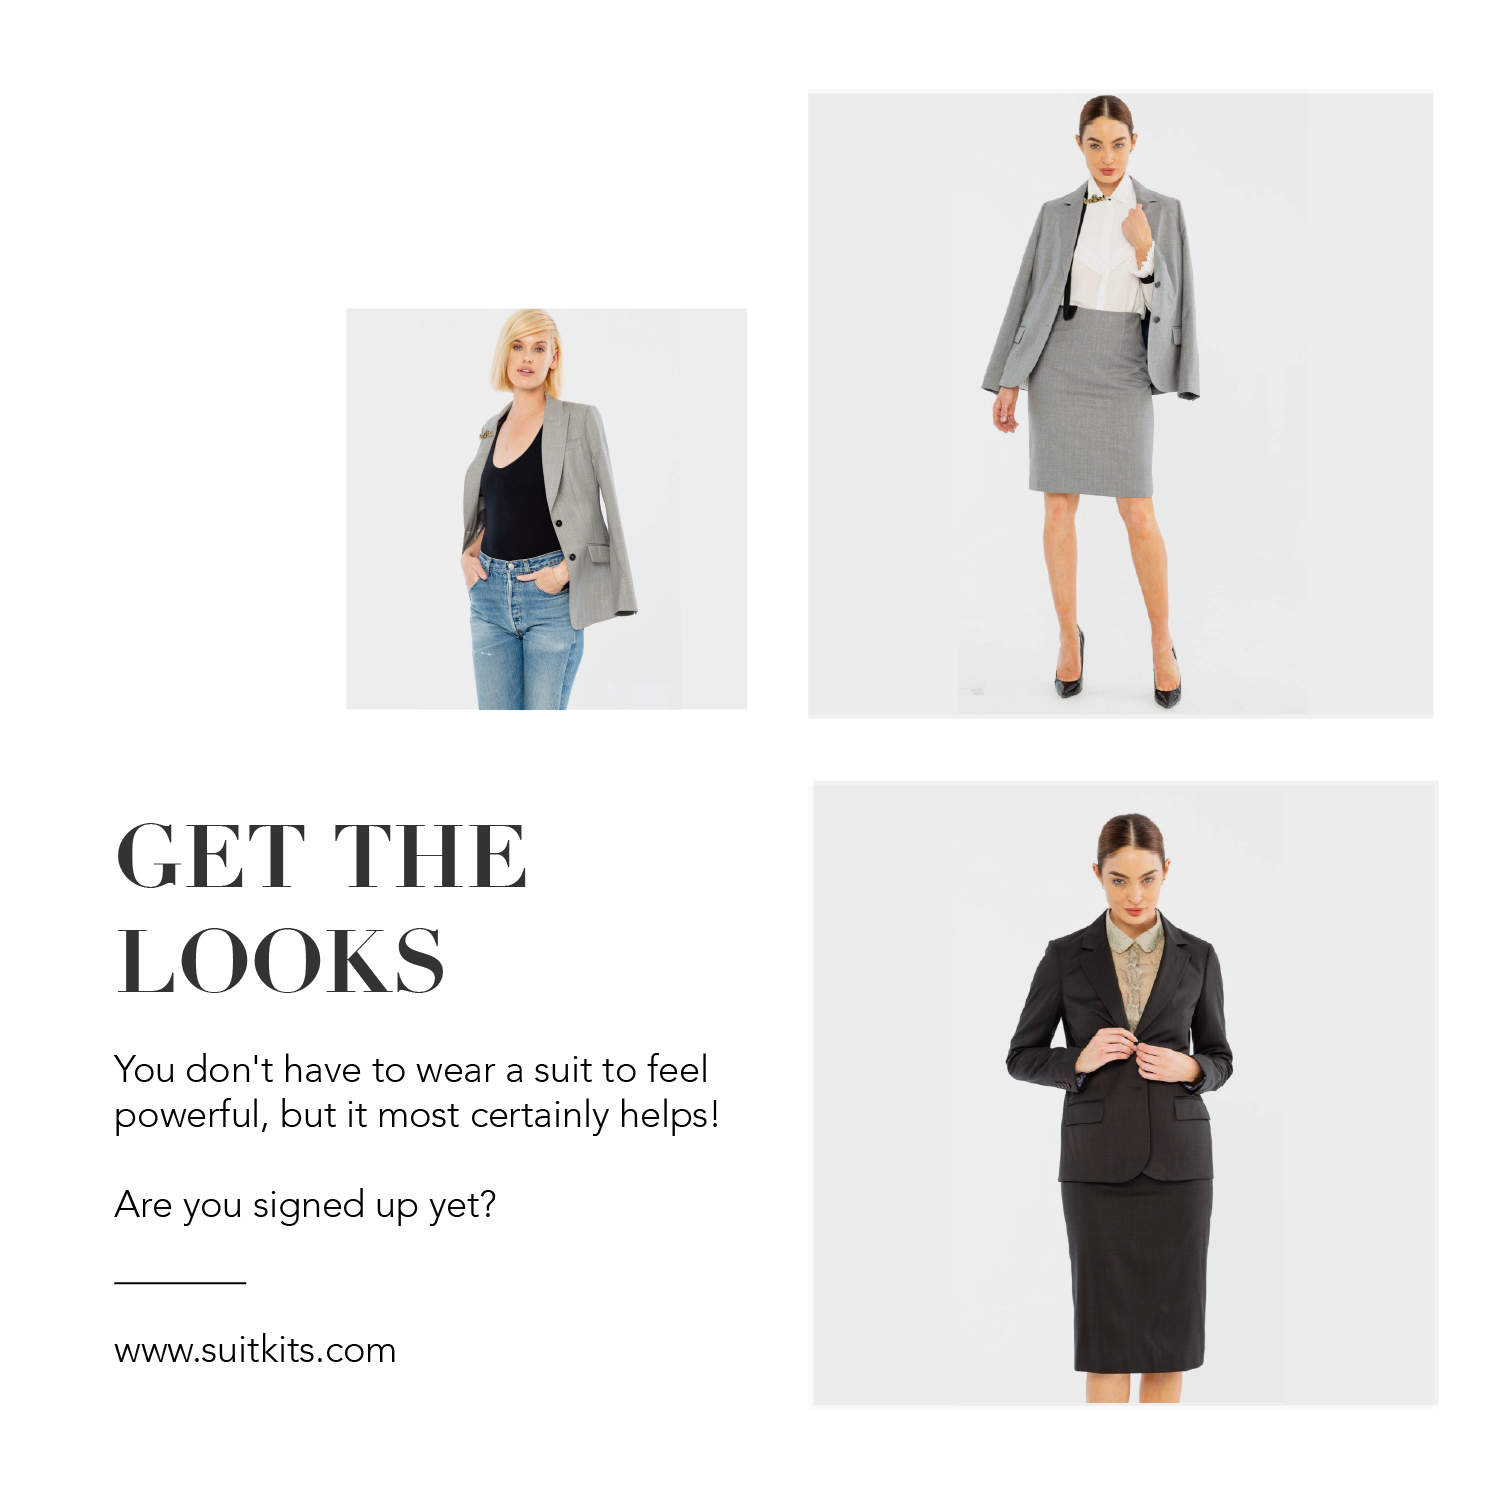 Suitkits-media-v2-02.png